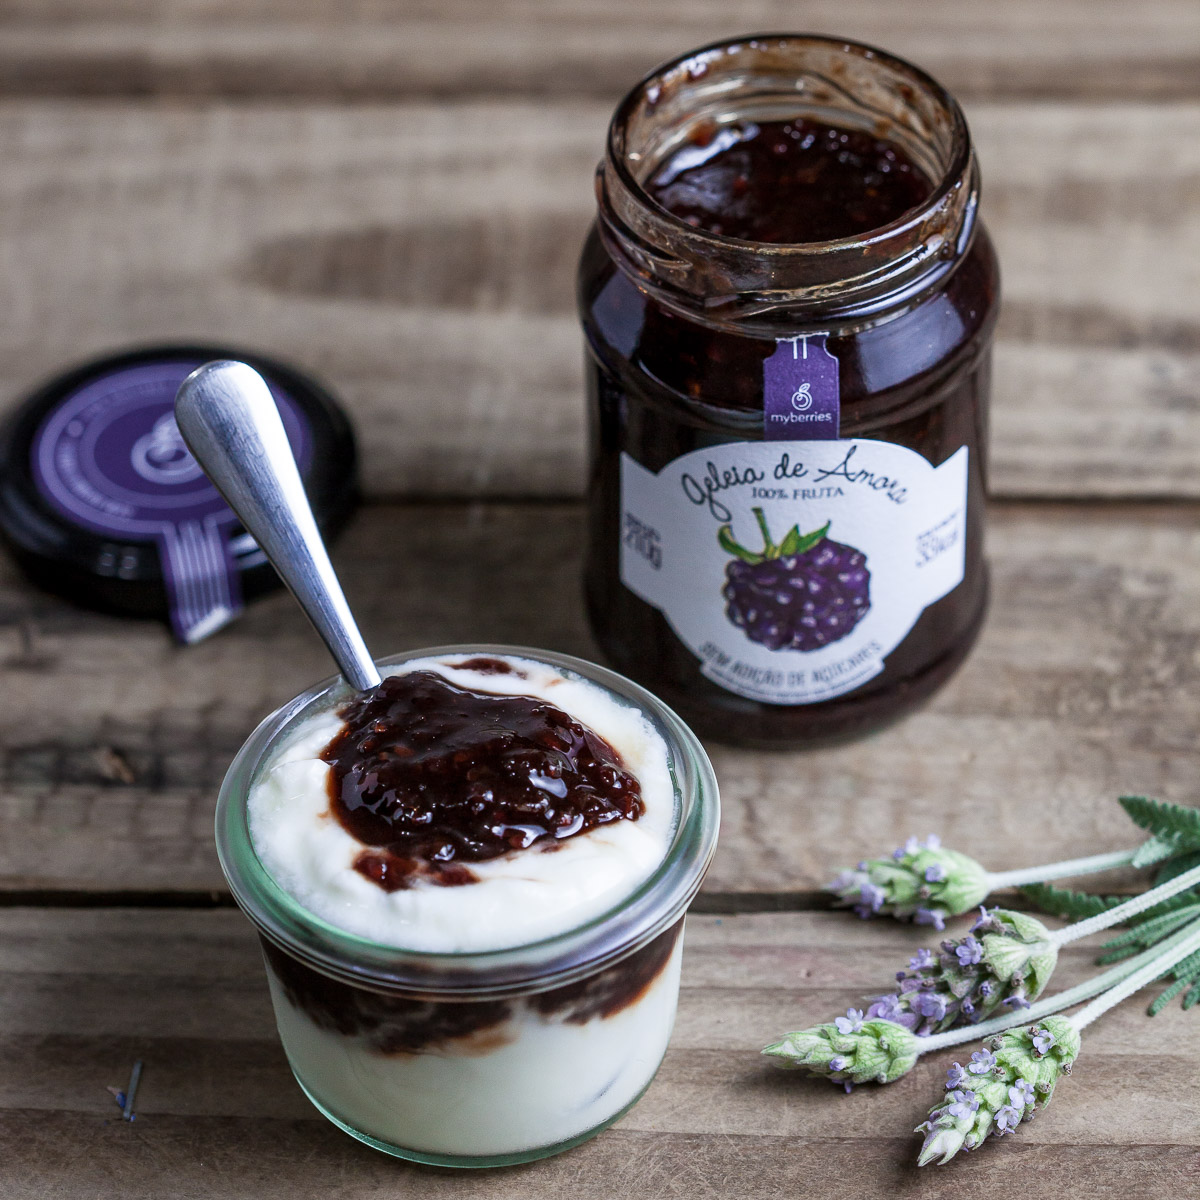 Food photo with yogurt and blueberru jam, decorated with lavander